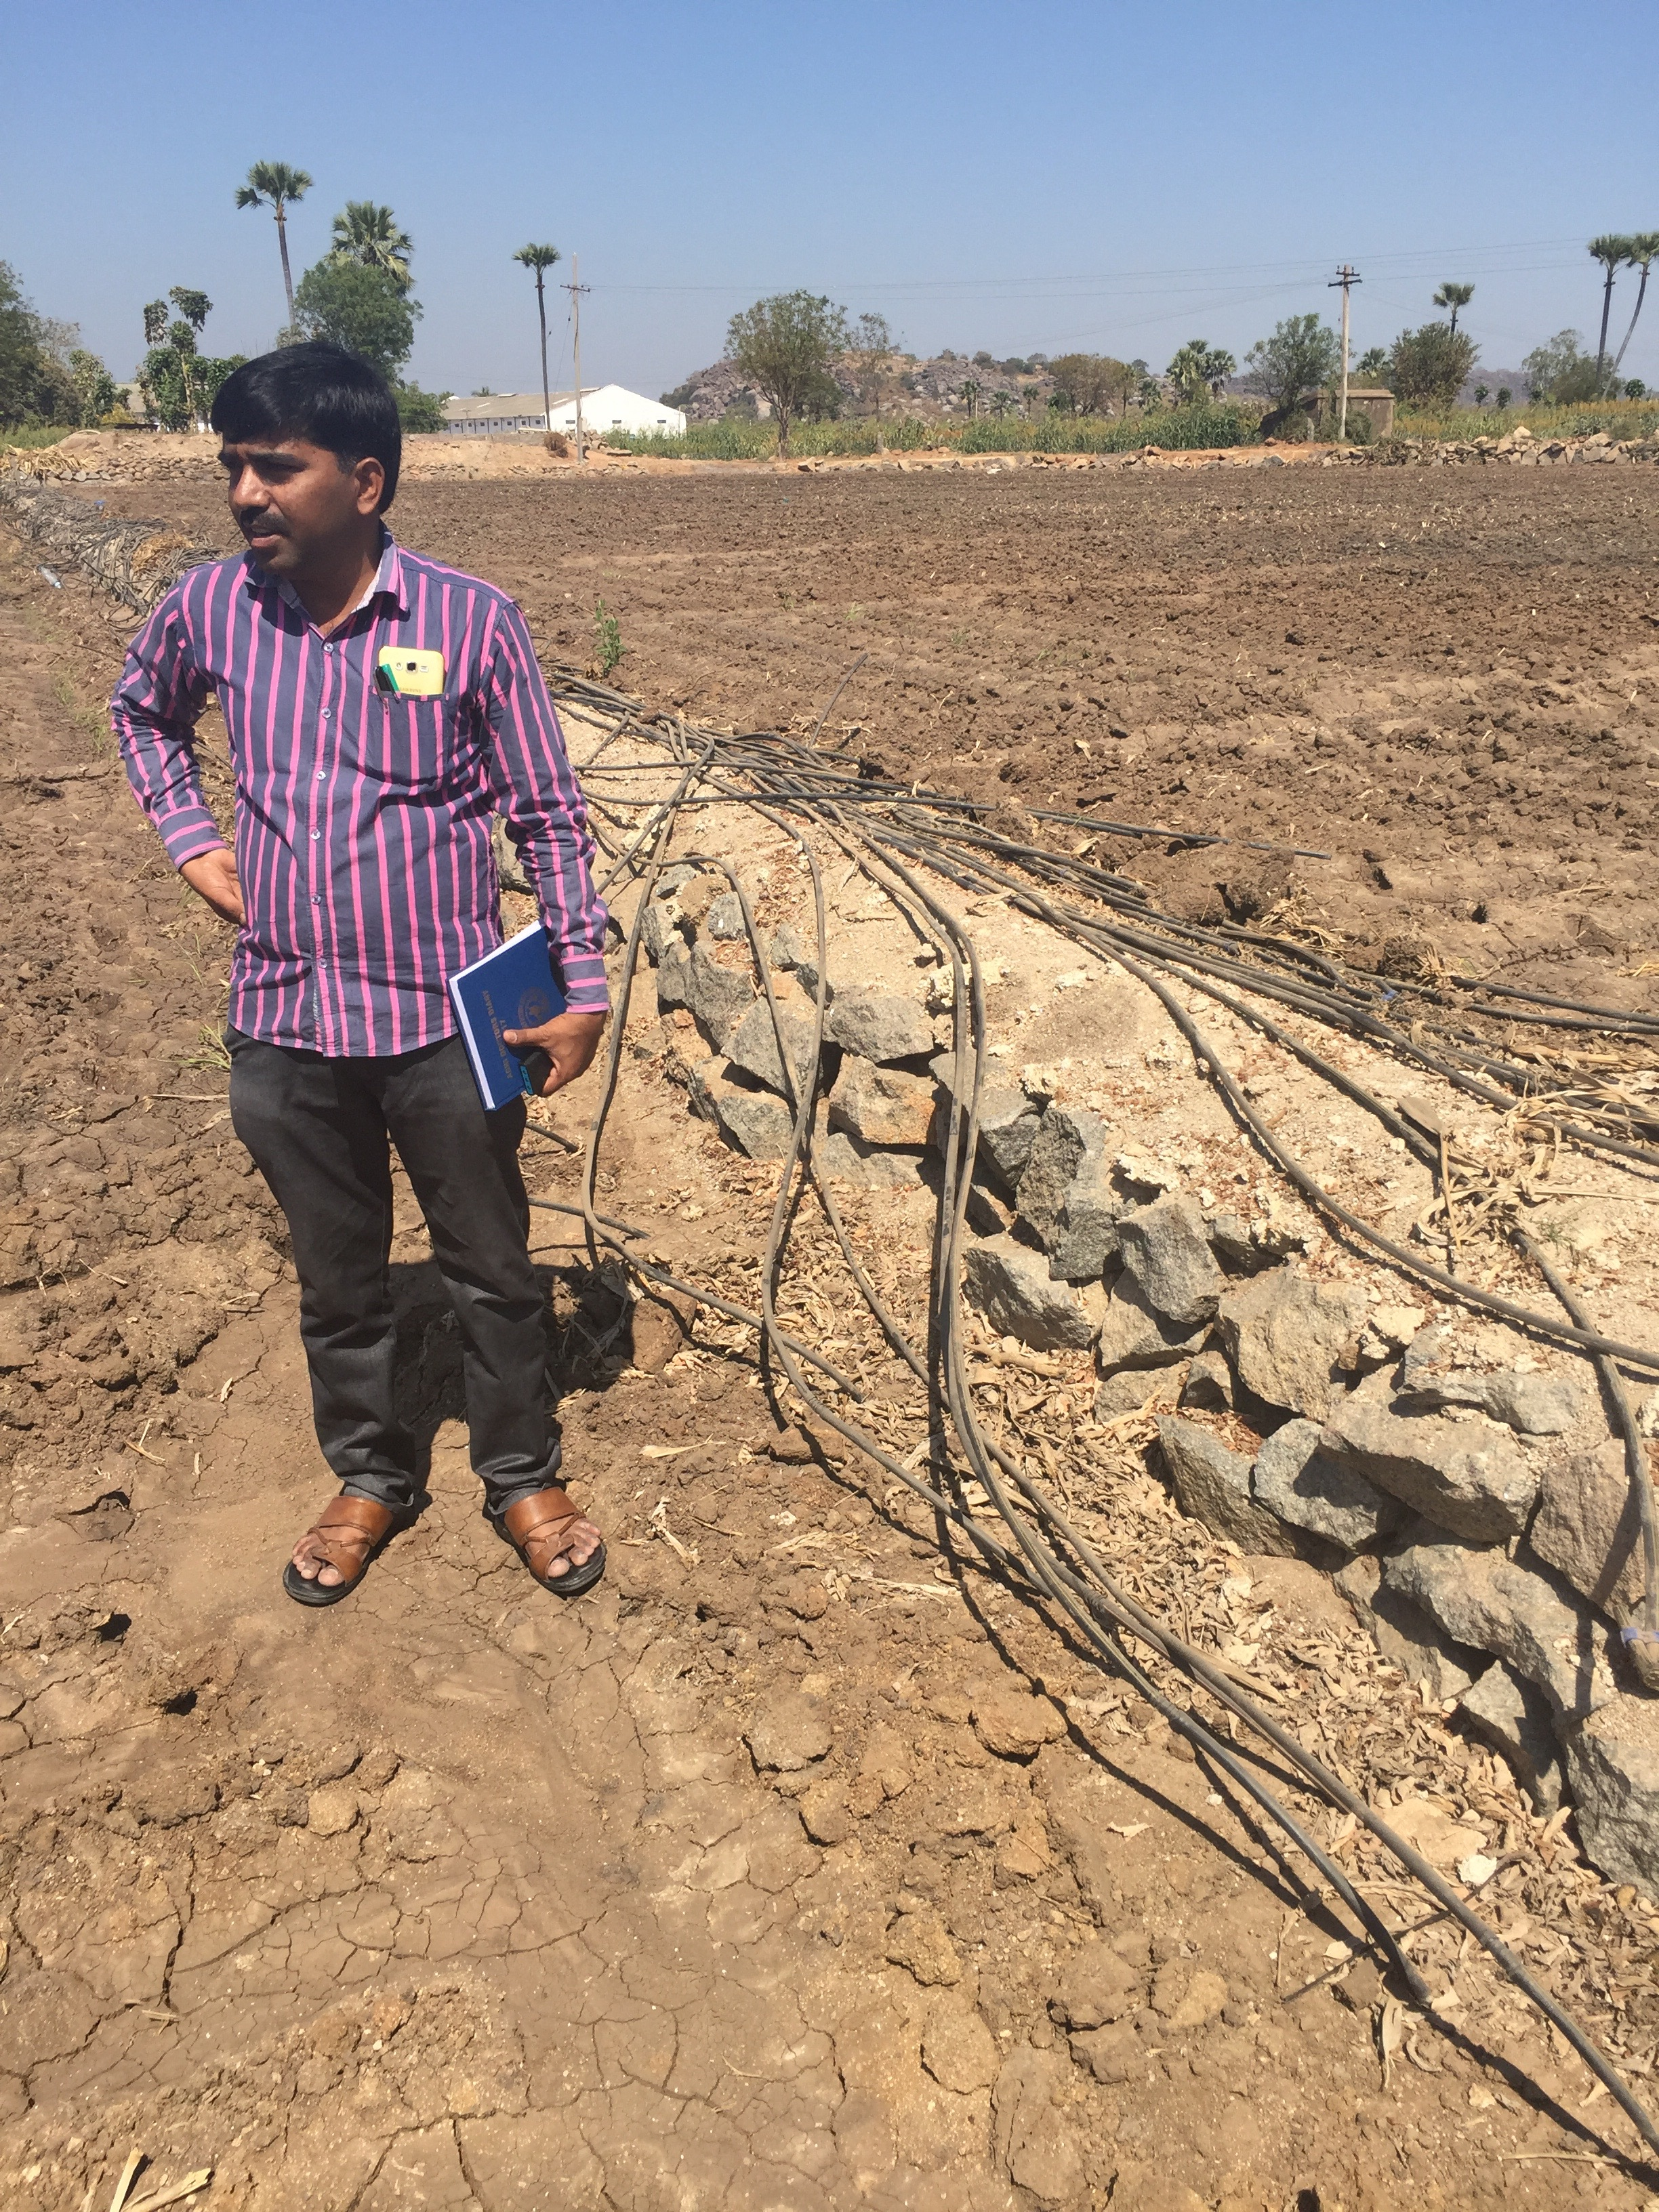 Drip-irrigation tubing for horticultural crops is collected on the edge of the field pre-season